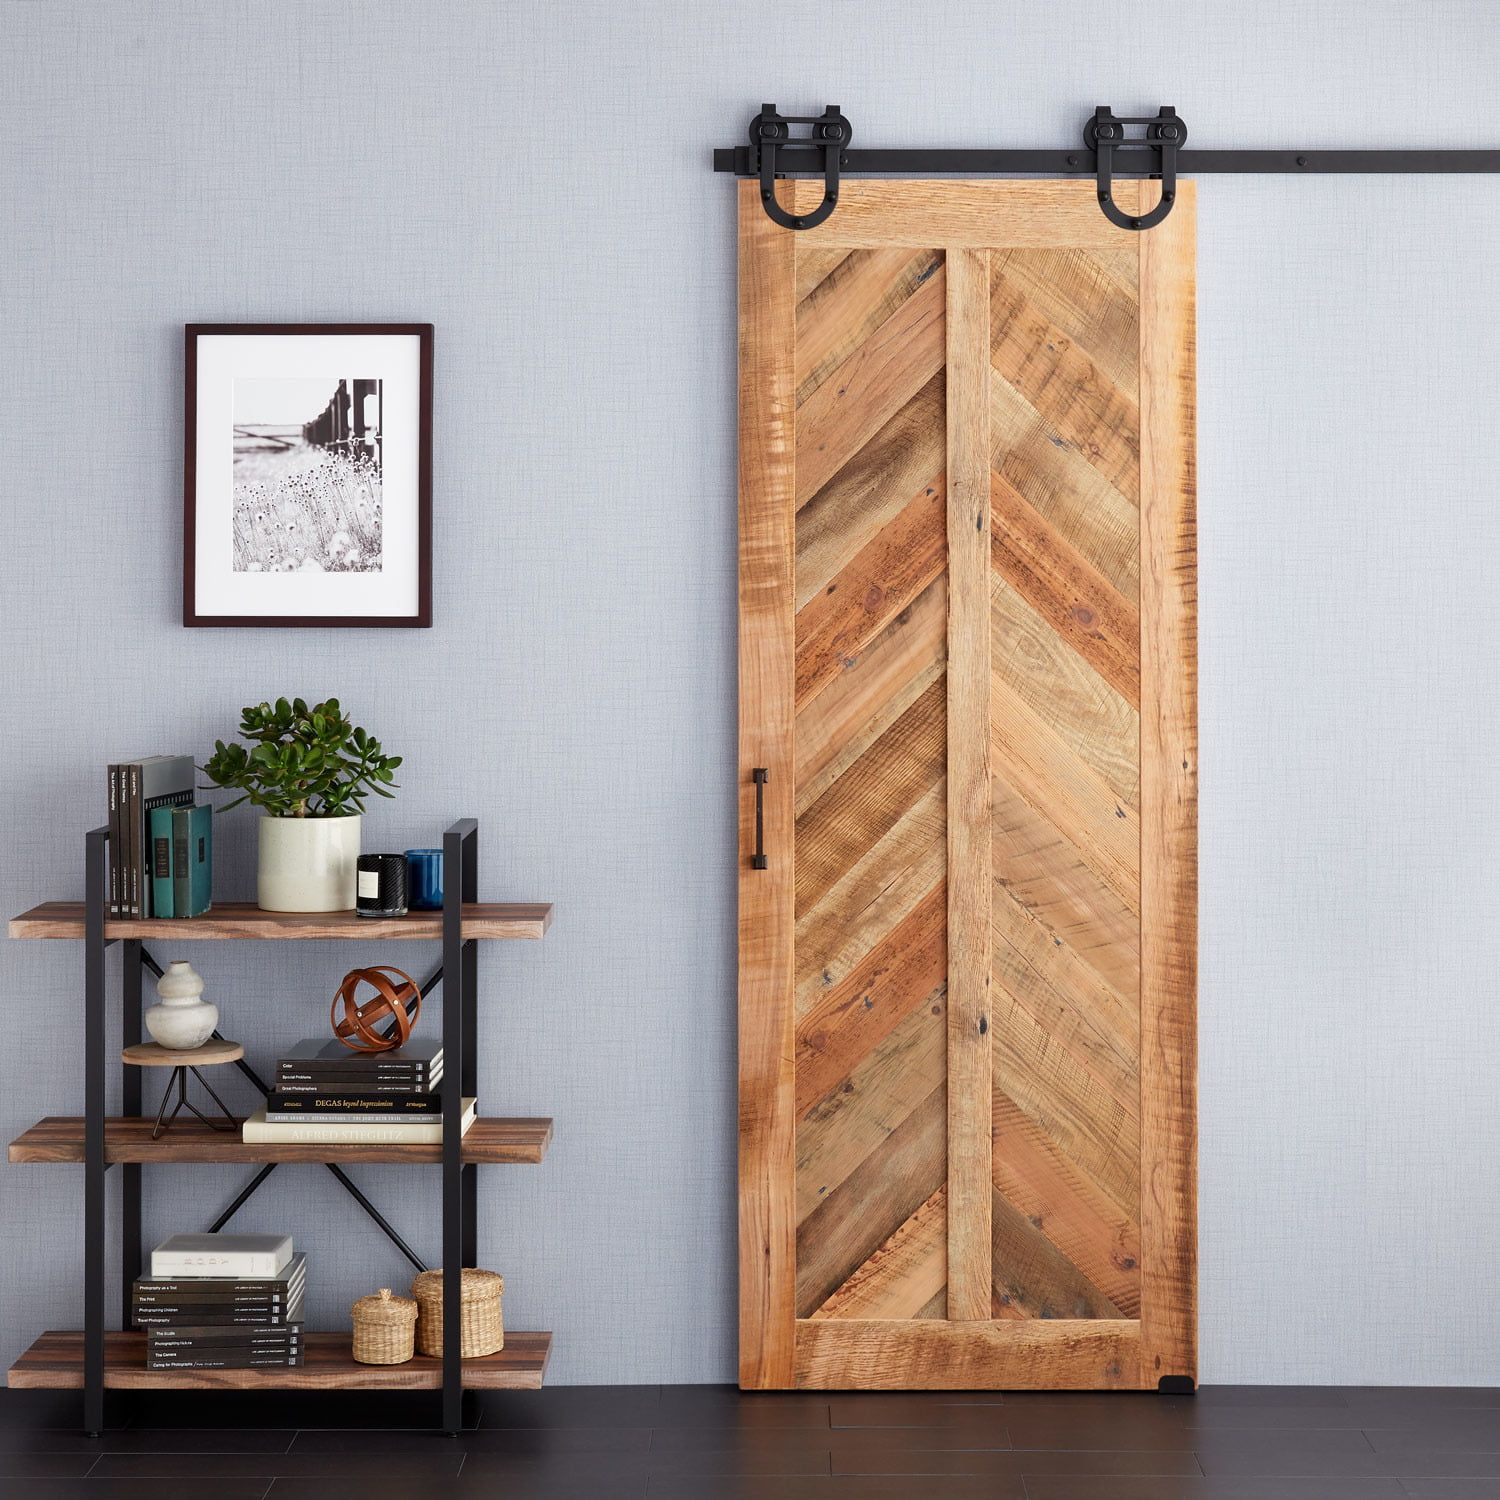 Pin By Heather Brice On Rooms In 2020 Wood Barn Door Barn Doors Sliding Sliding Barn Door Hardware